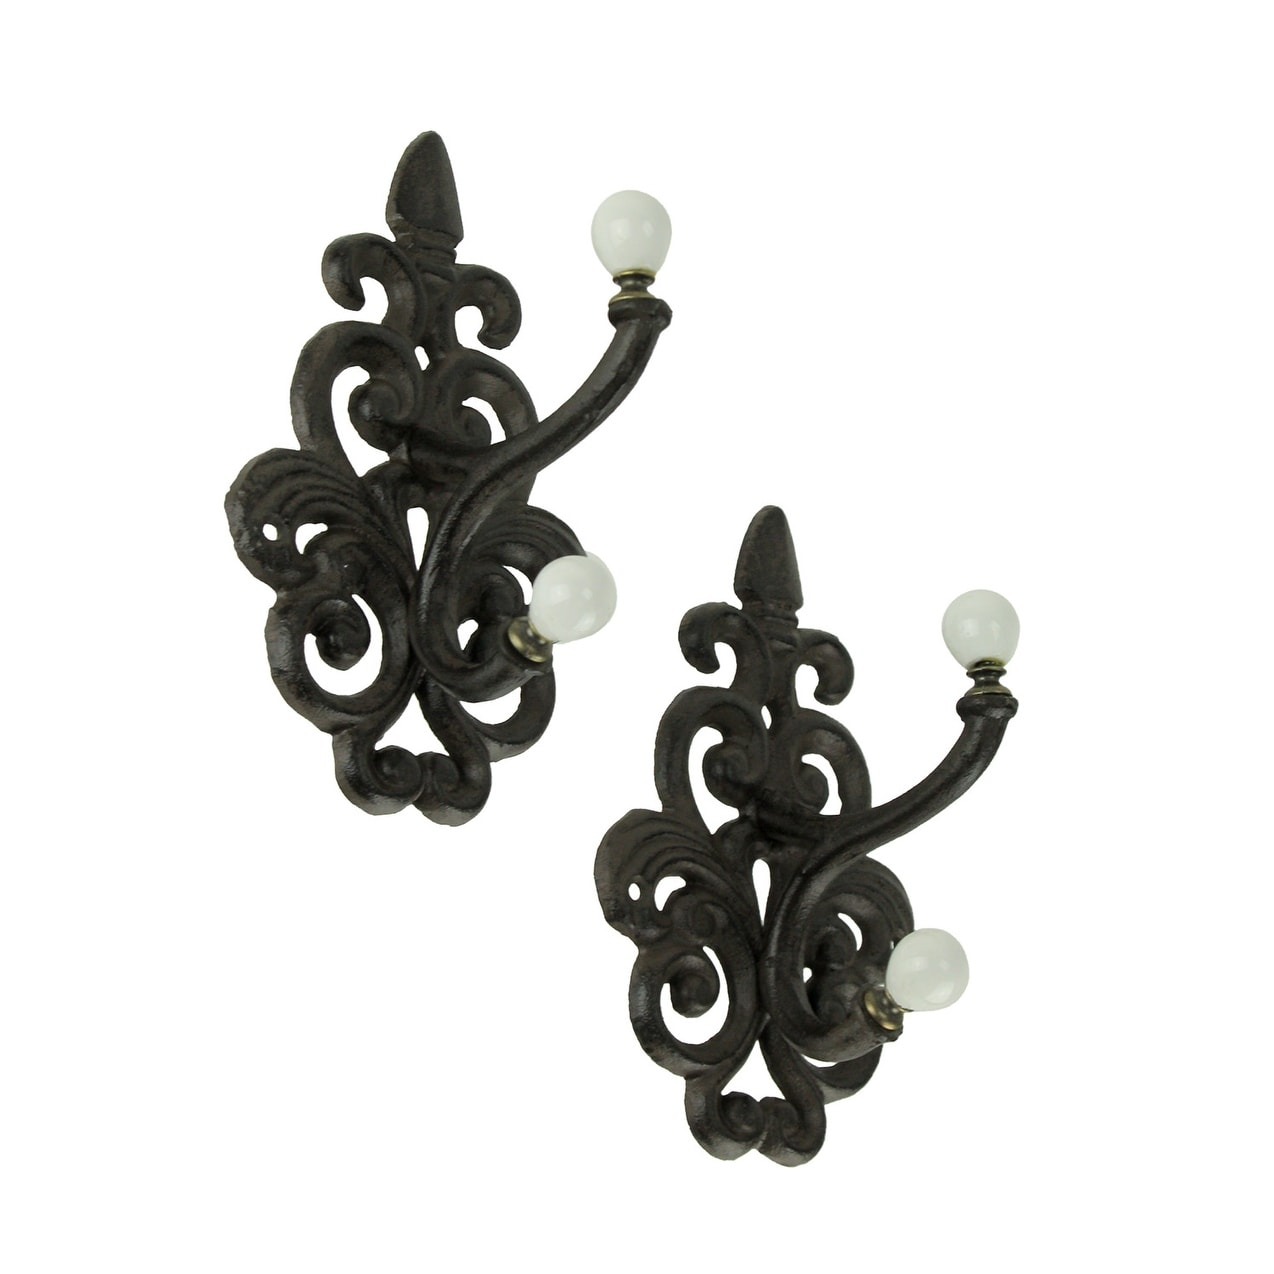 Home Decor 0170-01554 Cast Iron Fleur De Lis Double Wall Hooks Set of Six